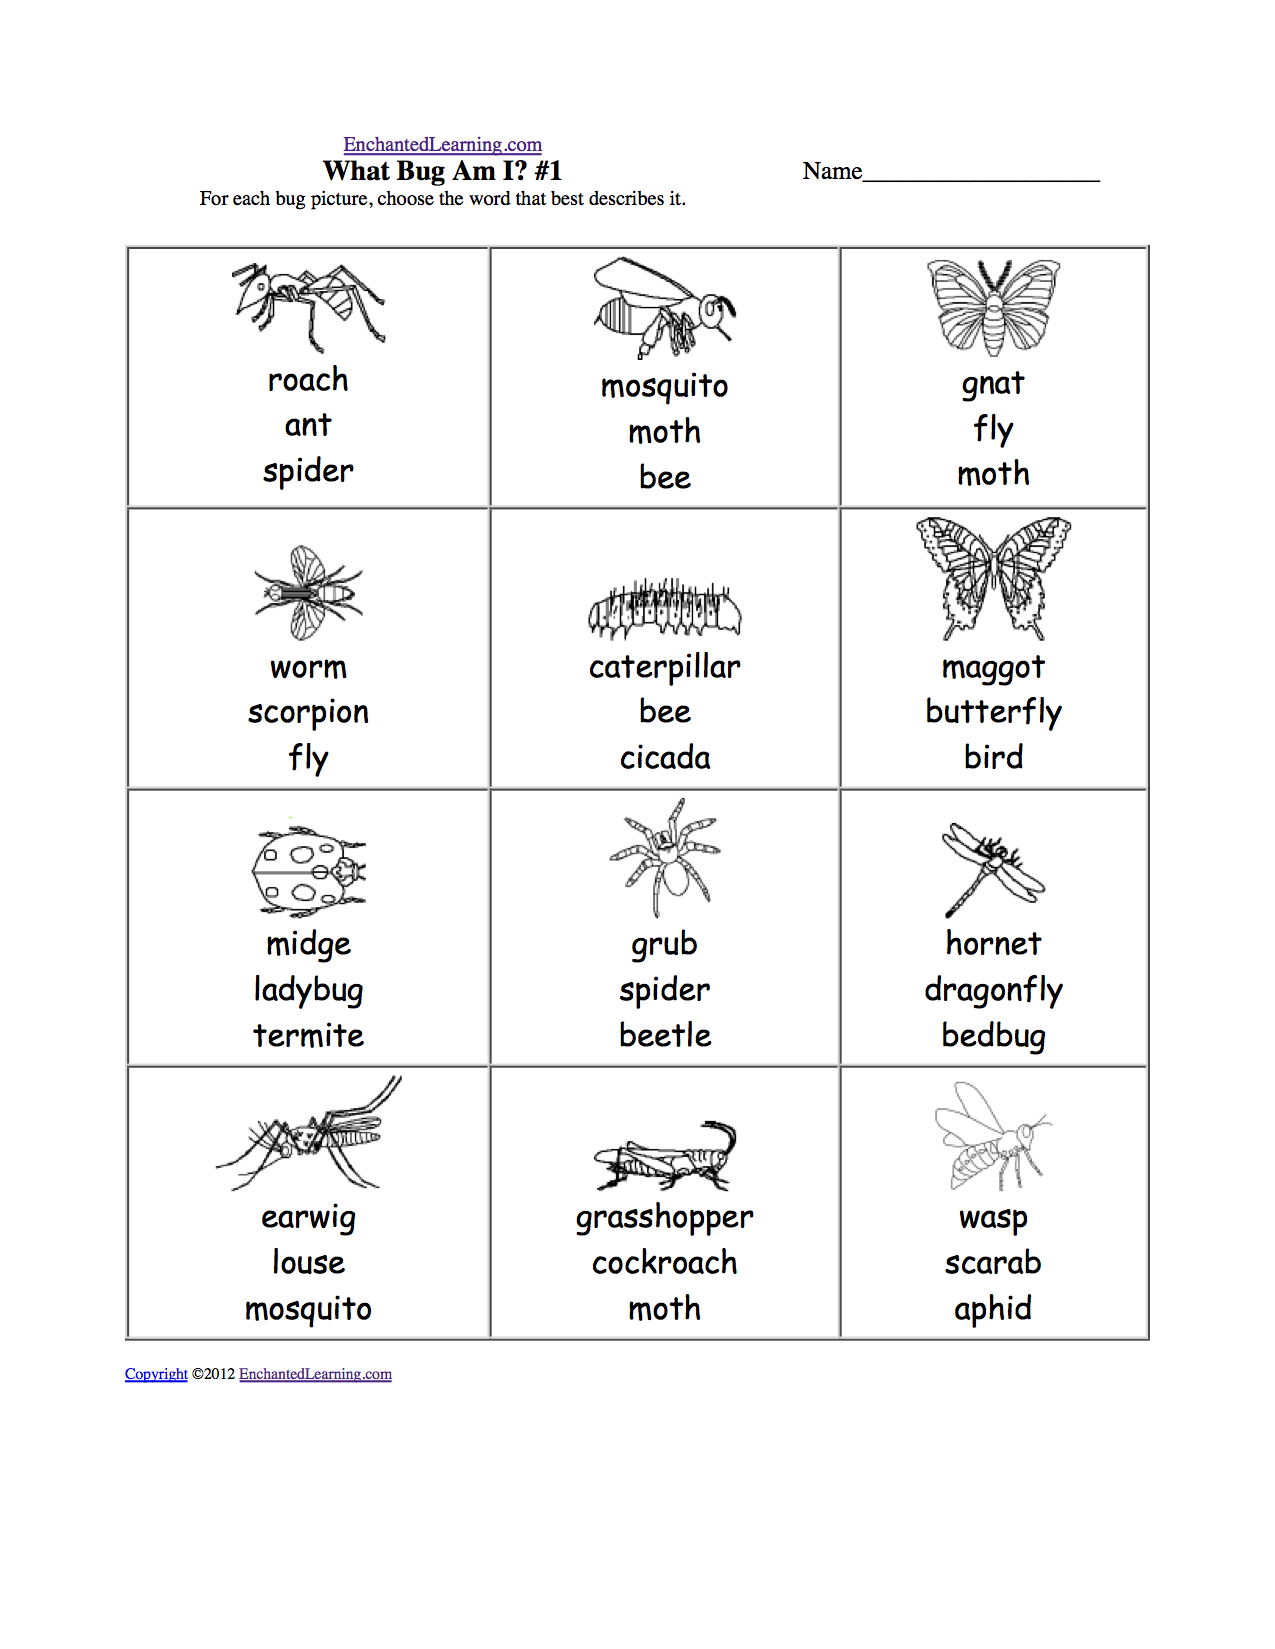 Aldiablosus  Terrific What Am I Worksheet Printouts  Enchantedlearningcom With Exciting Worksheet On Feelings Besides Present Simple Vs Present Continuous Worksheet Furthermore Free Common And Proper Noun Worksheets With Amazing Year  Worksheets Maths Also Std  Maths Worksheets In Addition Blend Phonics Worksheets And Remainder Theorem Worksheet With Answers As Well As Dot To Dot Number Worksheets Additionally Titration Calculation Worksheet From Enchantedlearningcom With Aldiablosus  Exciting What Am I Worksheet Printouts  Enchantedlearningcom With Amazing Worksheet On Feelings Besides Present Simple Vs Present Continuous Worksheet Furthermore Free Common And Proper Noun Worksheets And Terrific Year  Worksheets Maths Also Std  Maths Worksheets In Addition Blend Phonics Worksheets From Enchantedlearningcom